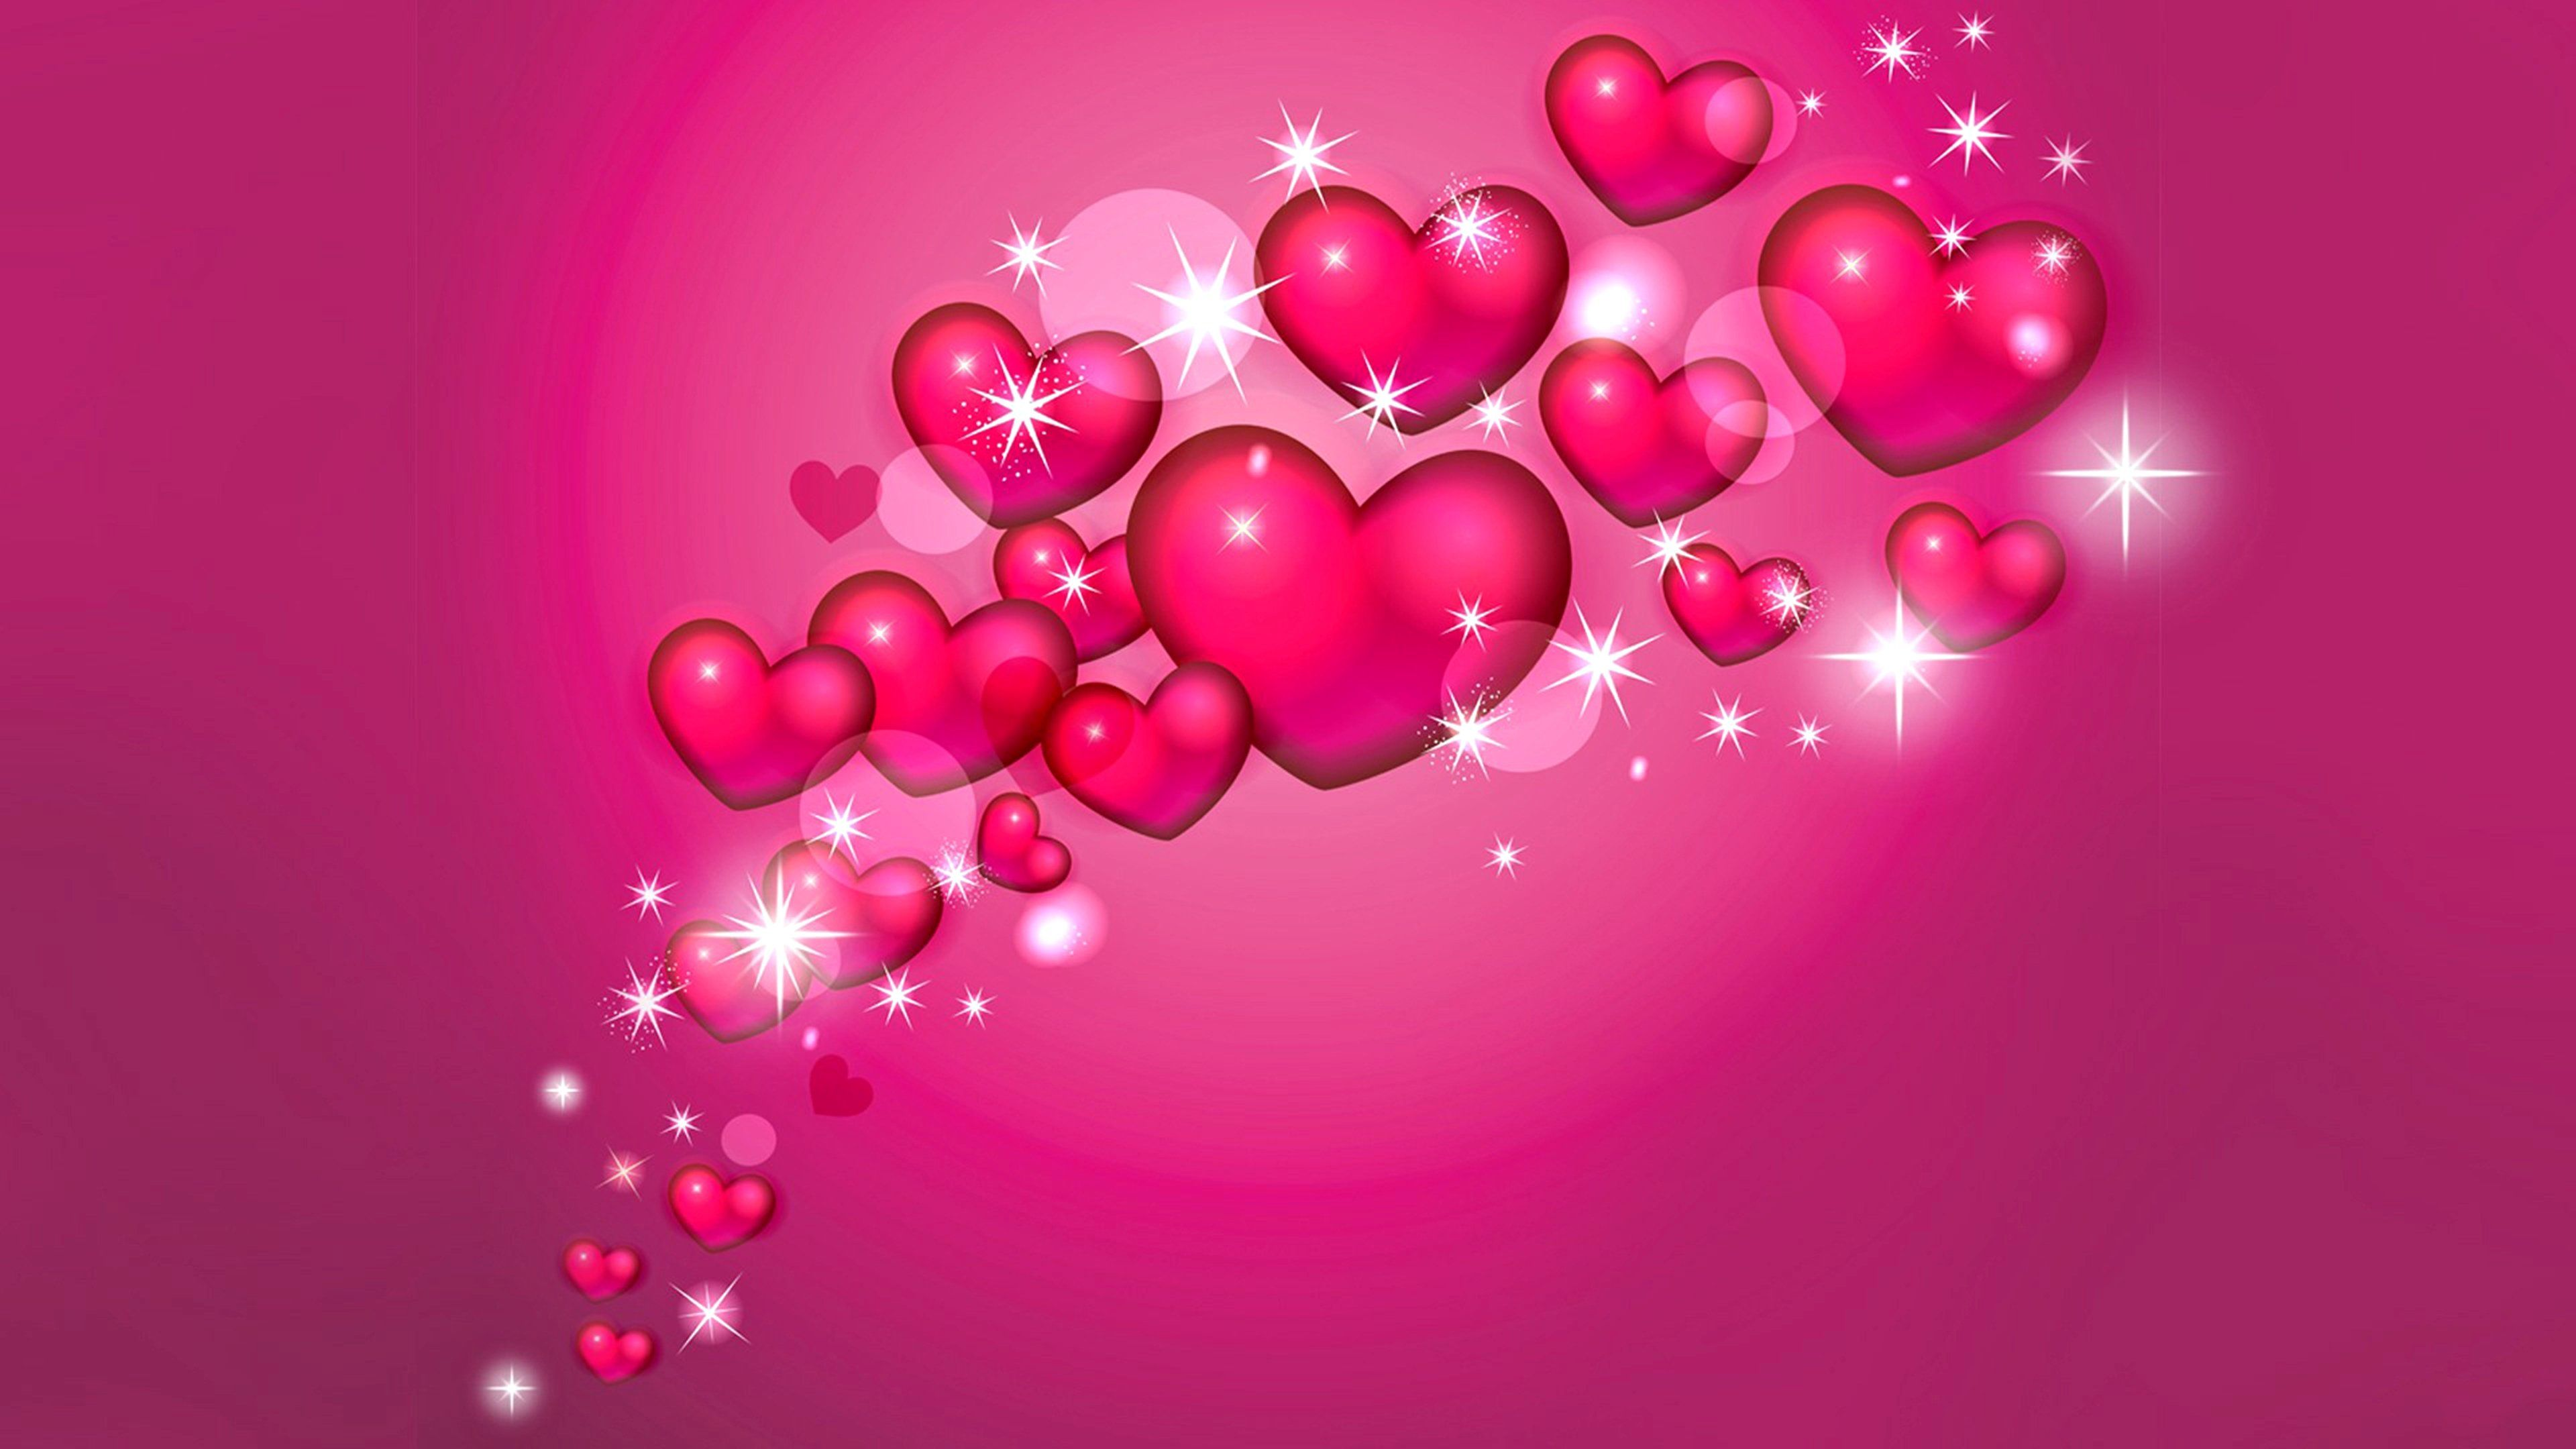 Heart Wallpaper High Resolution On Wallpaper 1080p Hd Heart